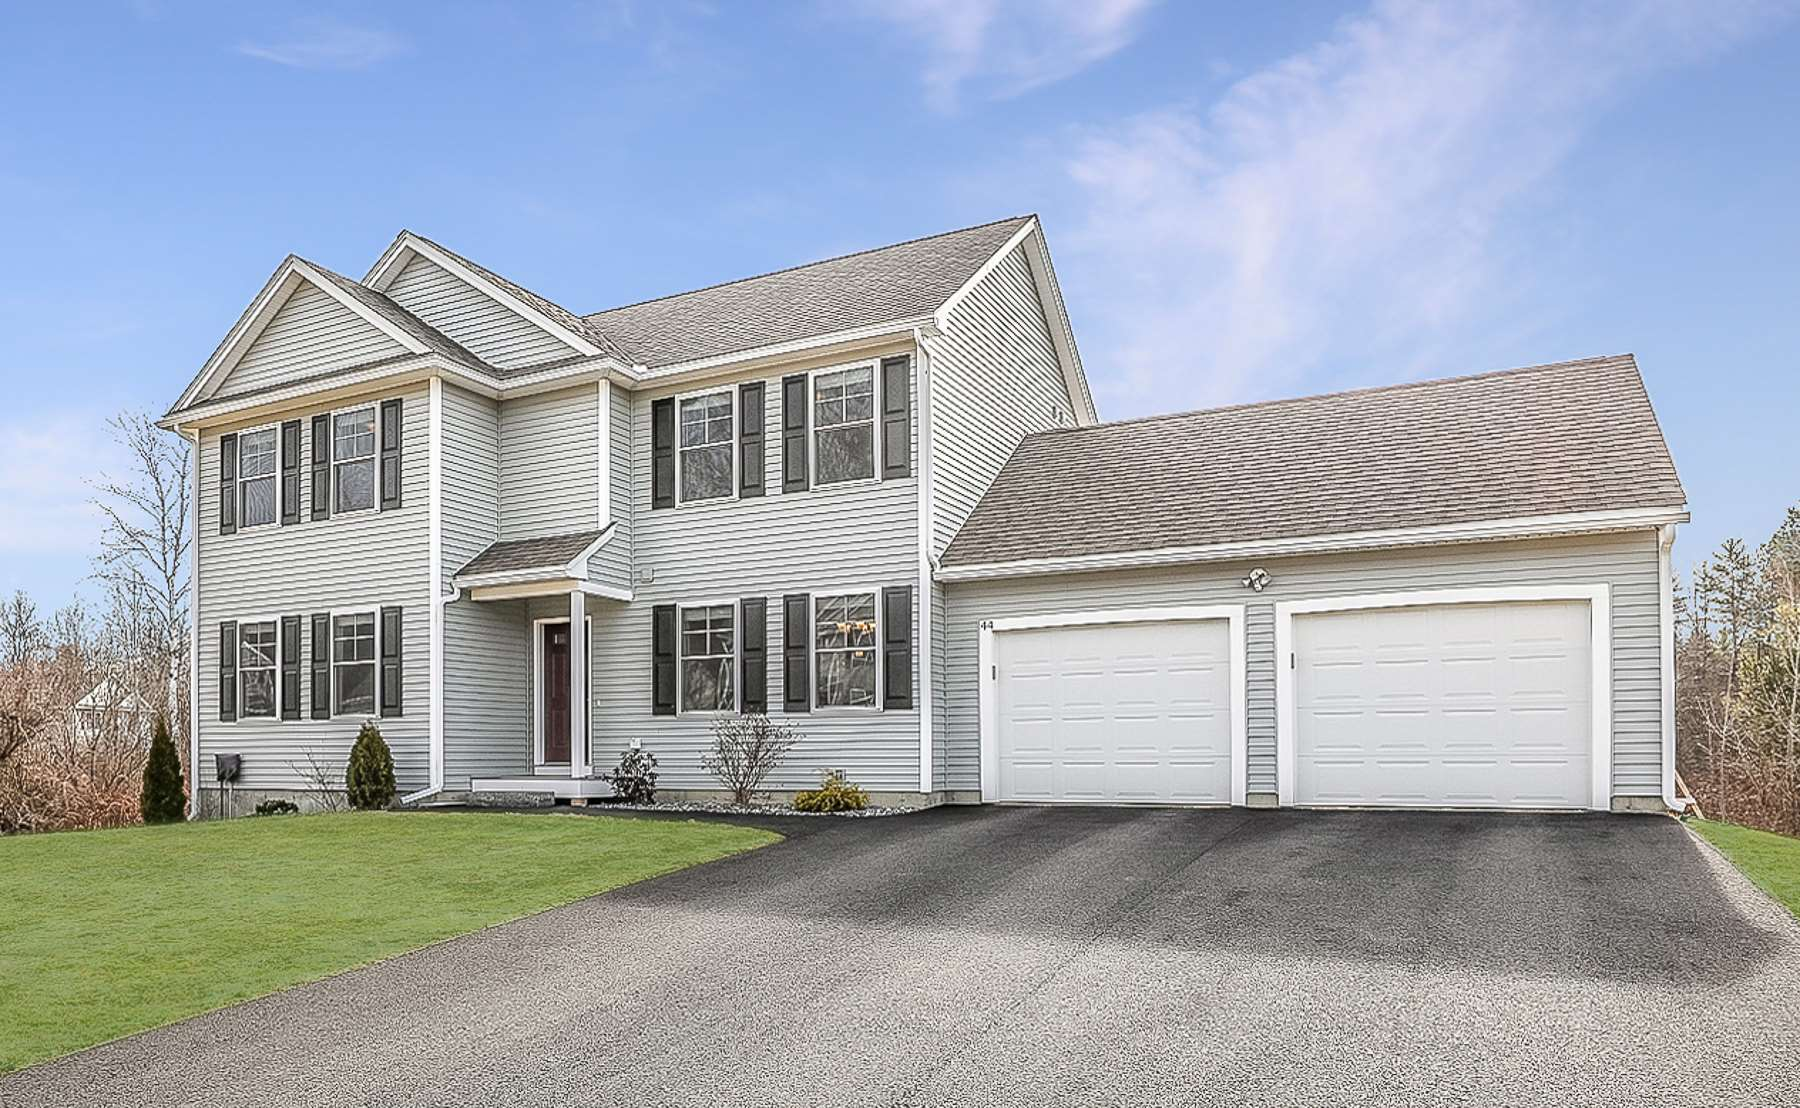 MLS 4798556: 44 West Meadow Court, Milford NH